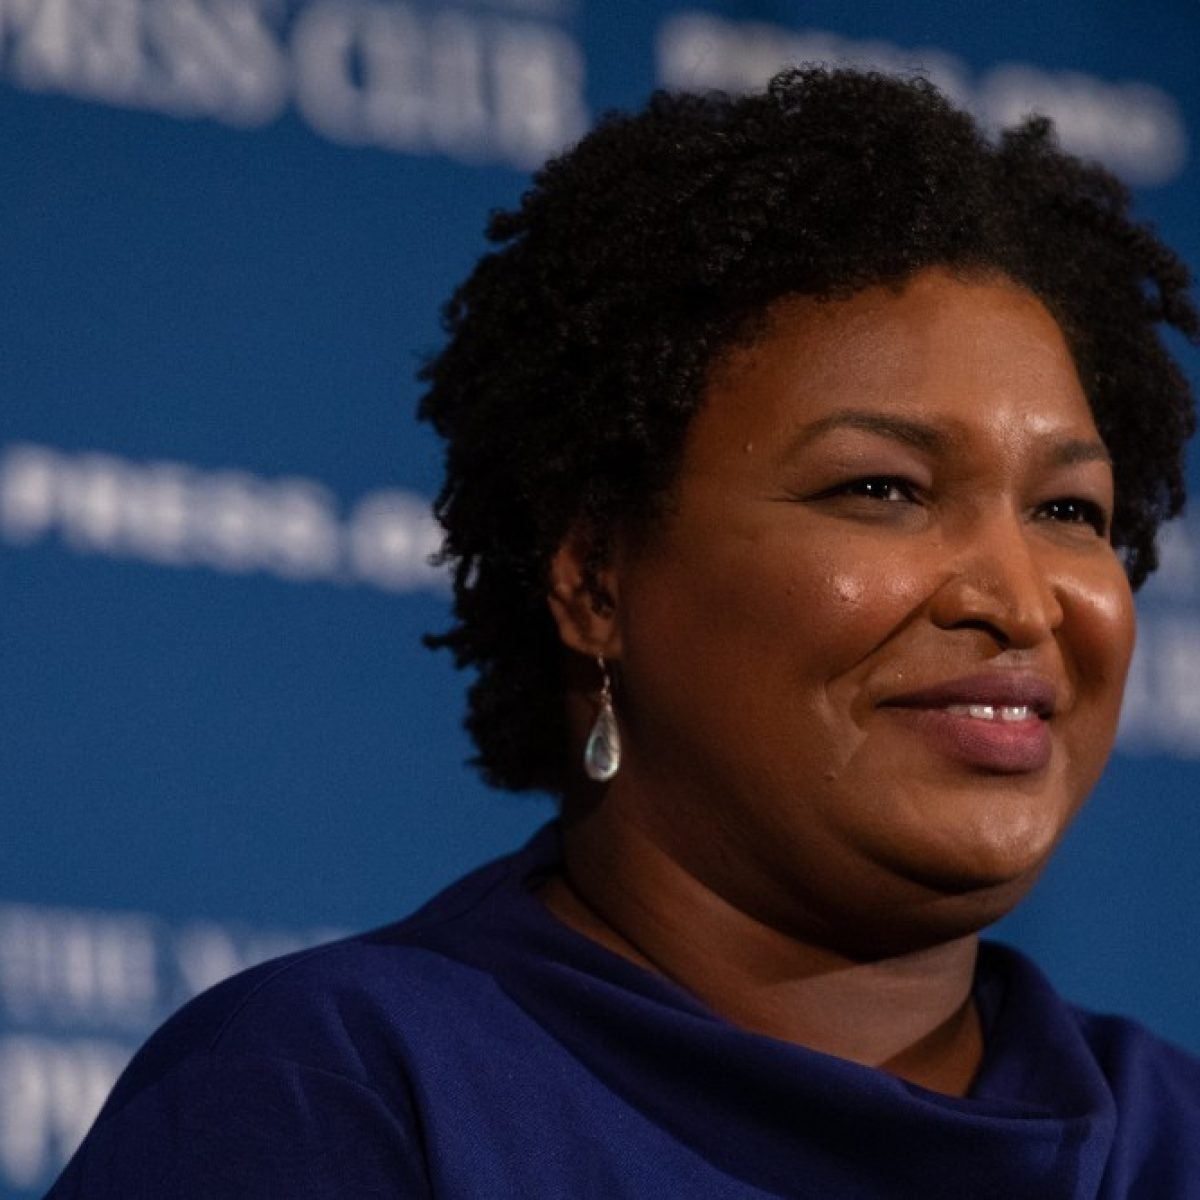 Why Would Anyone Suggest Stacey Abrams Isn't Qualified For VP?